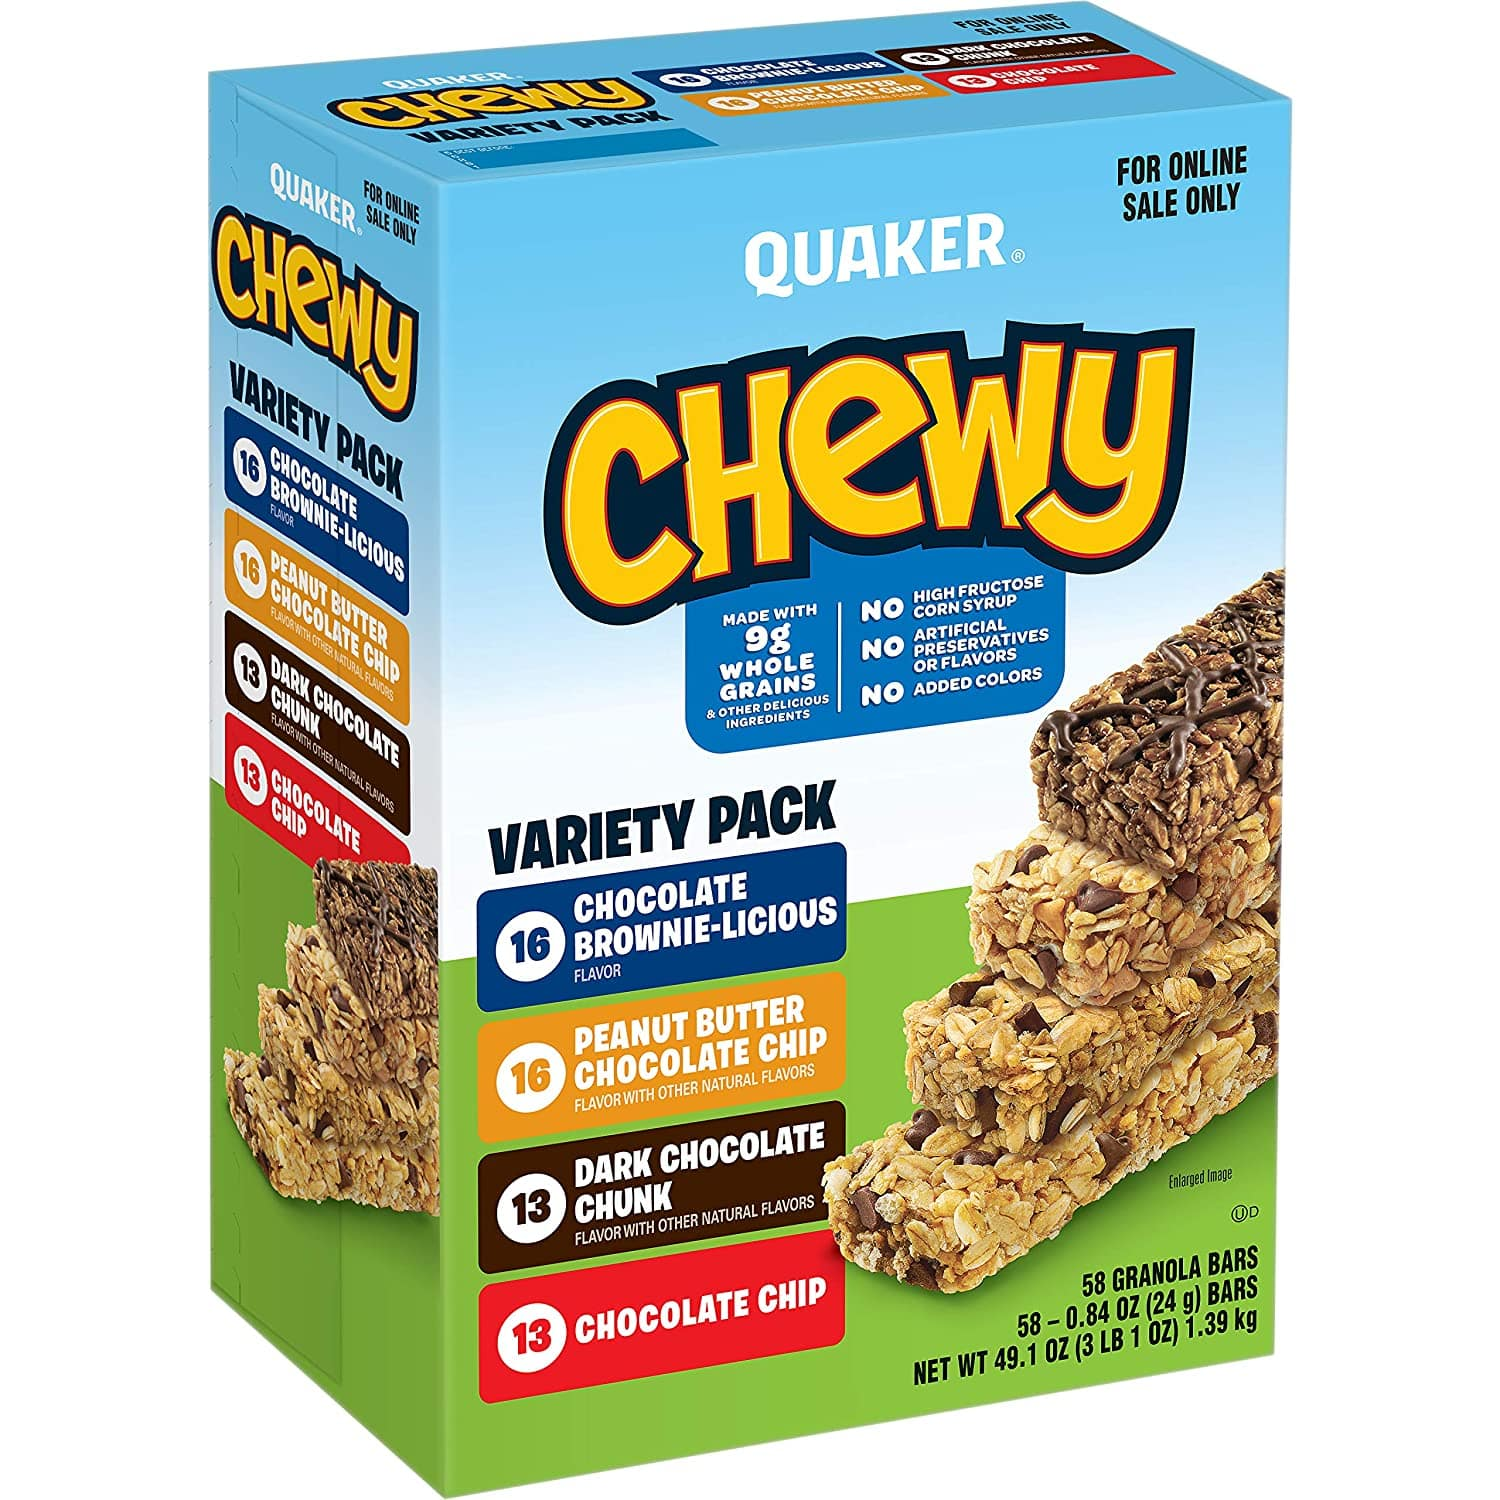 58-Ct Quaker Chewy Granola Bars (Variety Pack) $9 w/ S&S + Free Shipping w/ Prime or on $25+